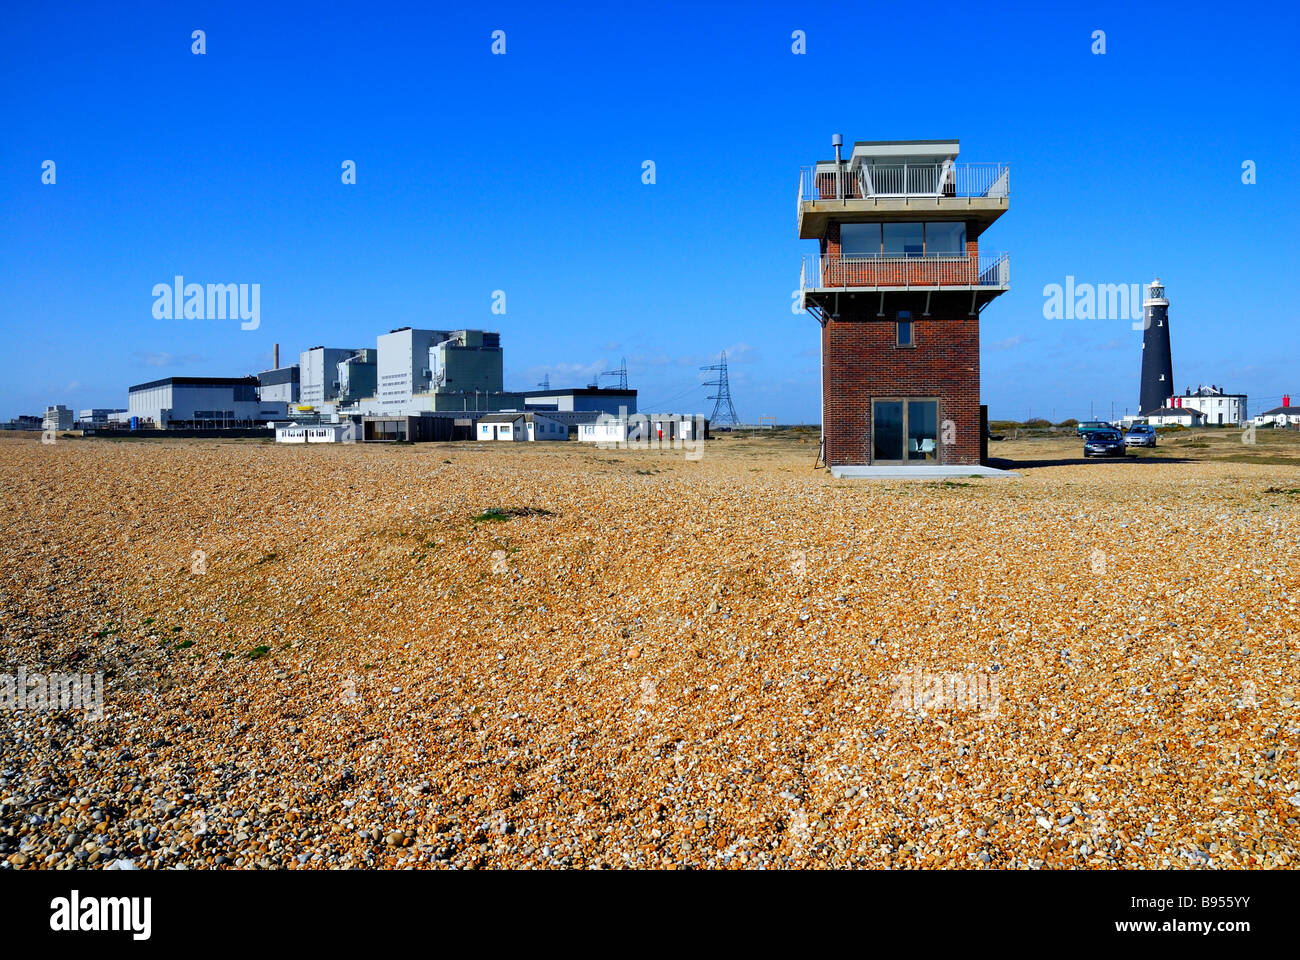 Atomic power station at Dungeness - Stock Image